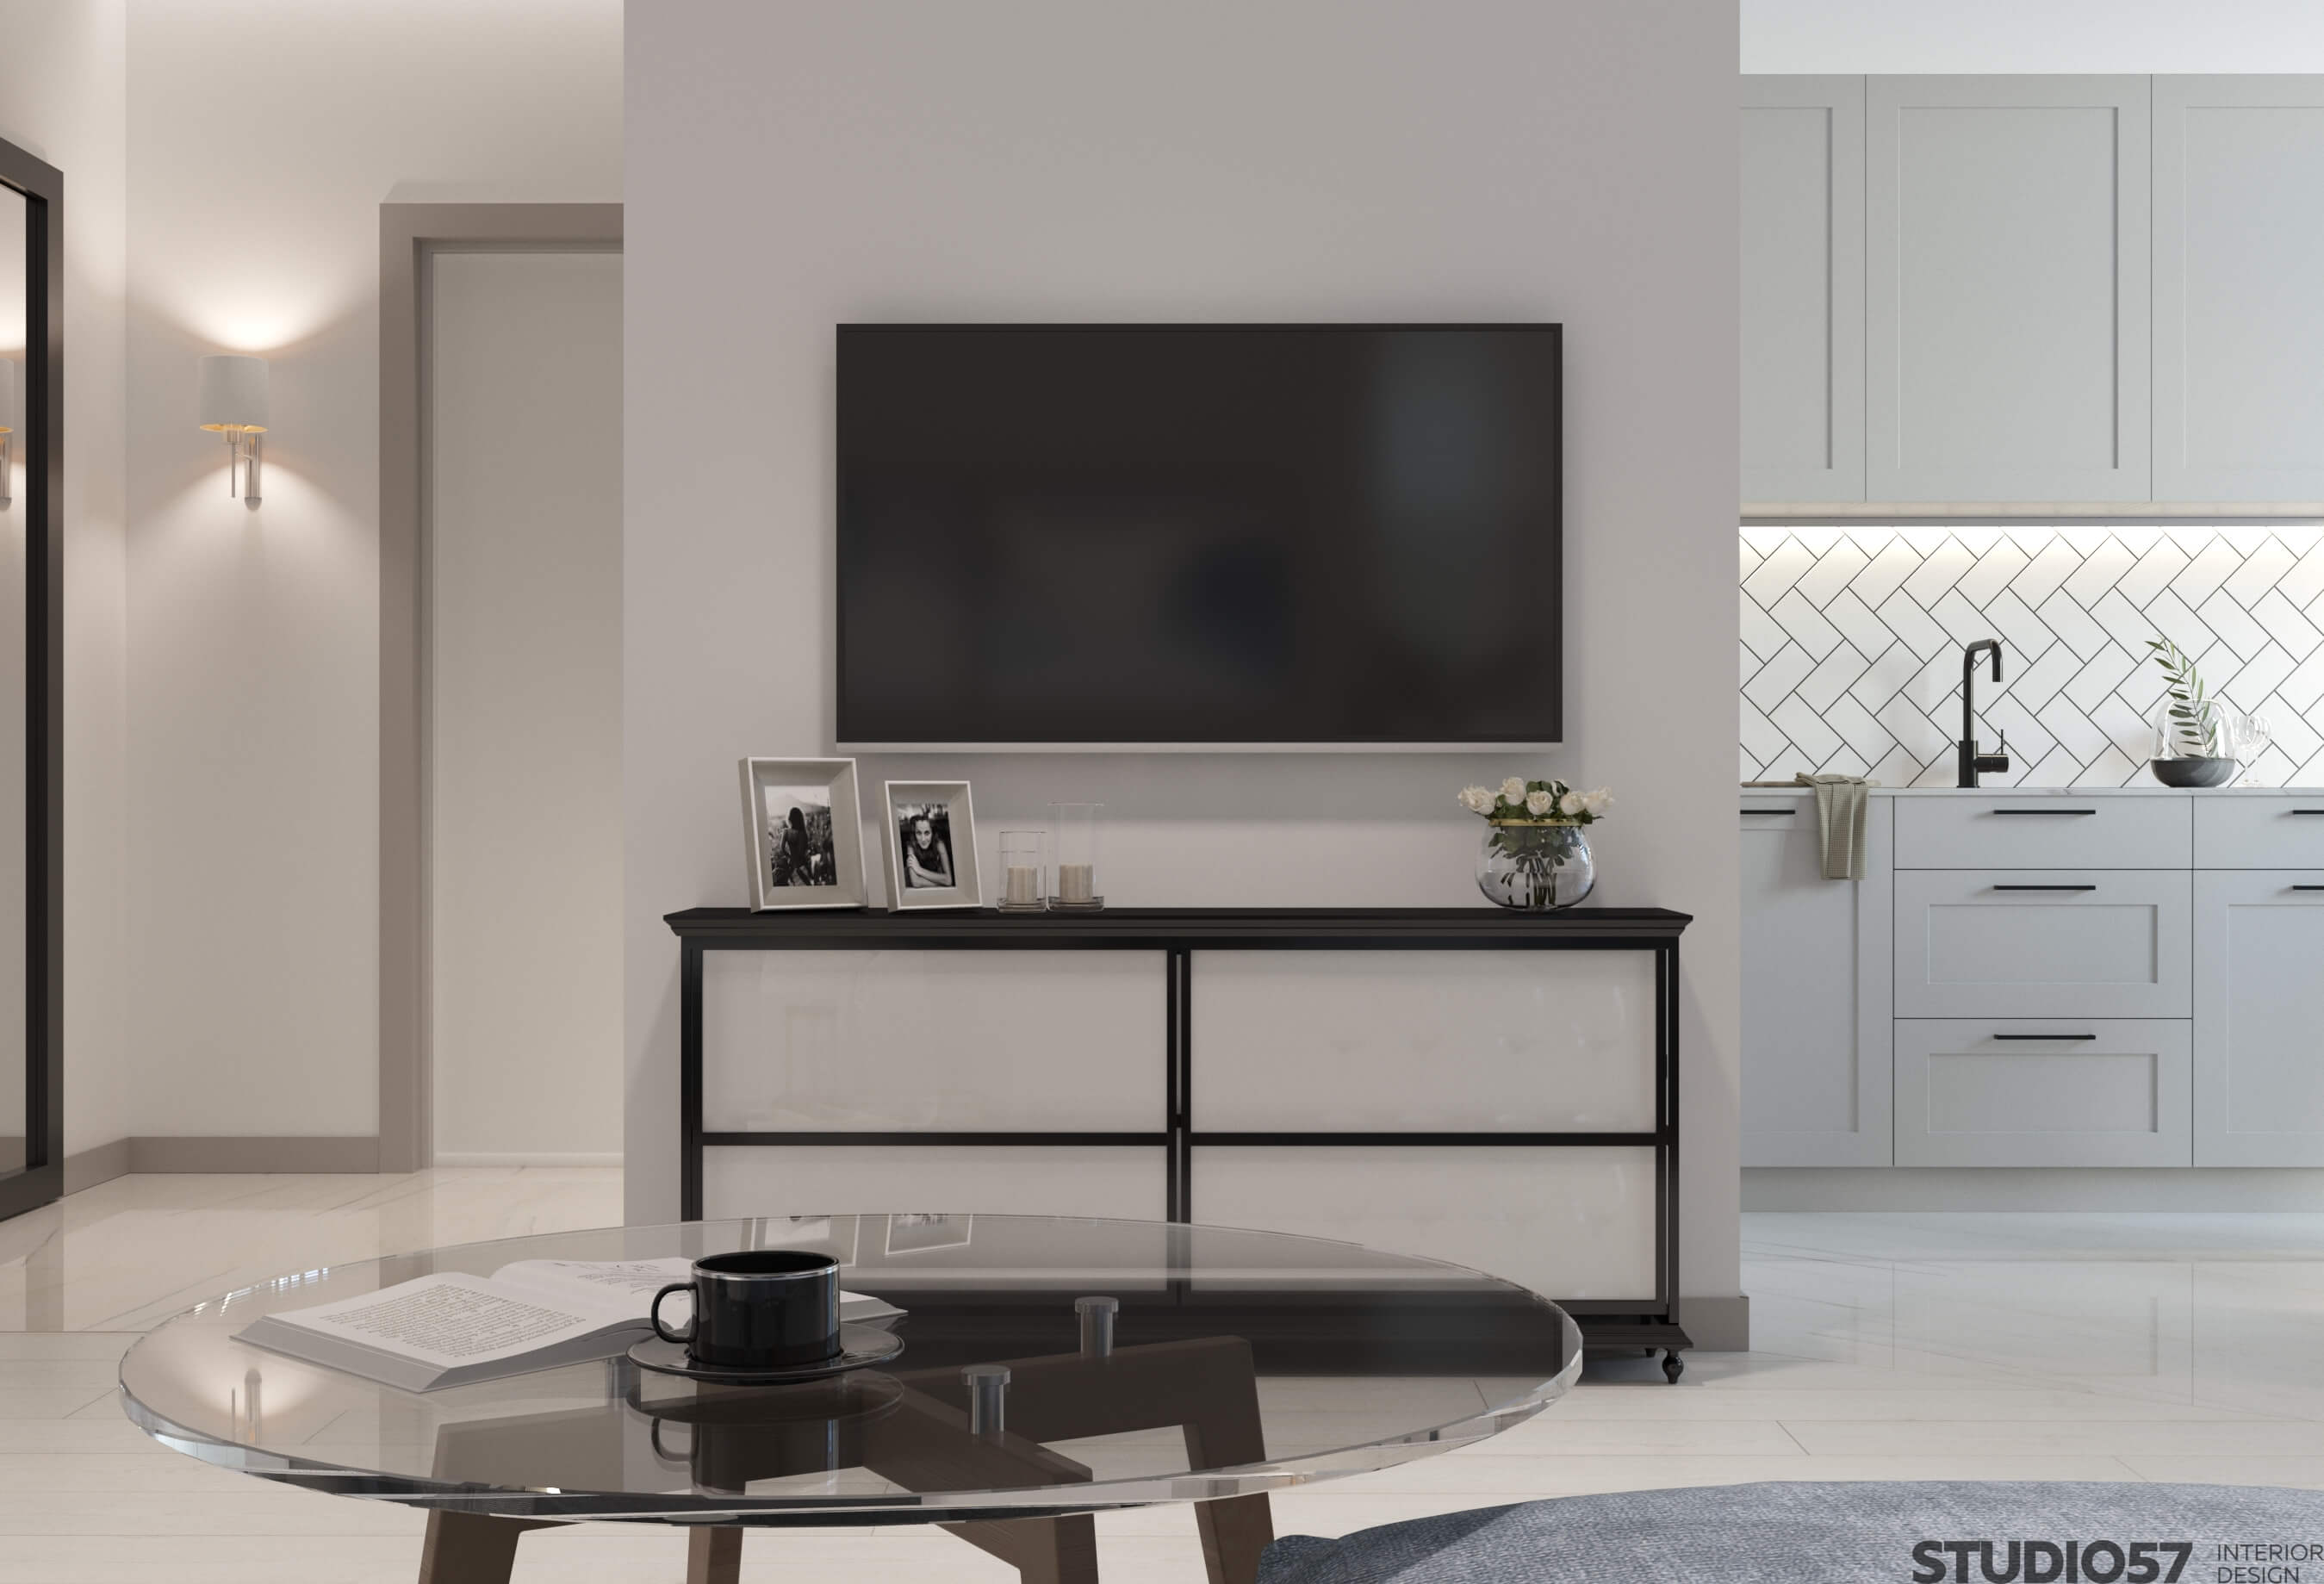 How to place the TV in the living room